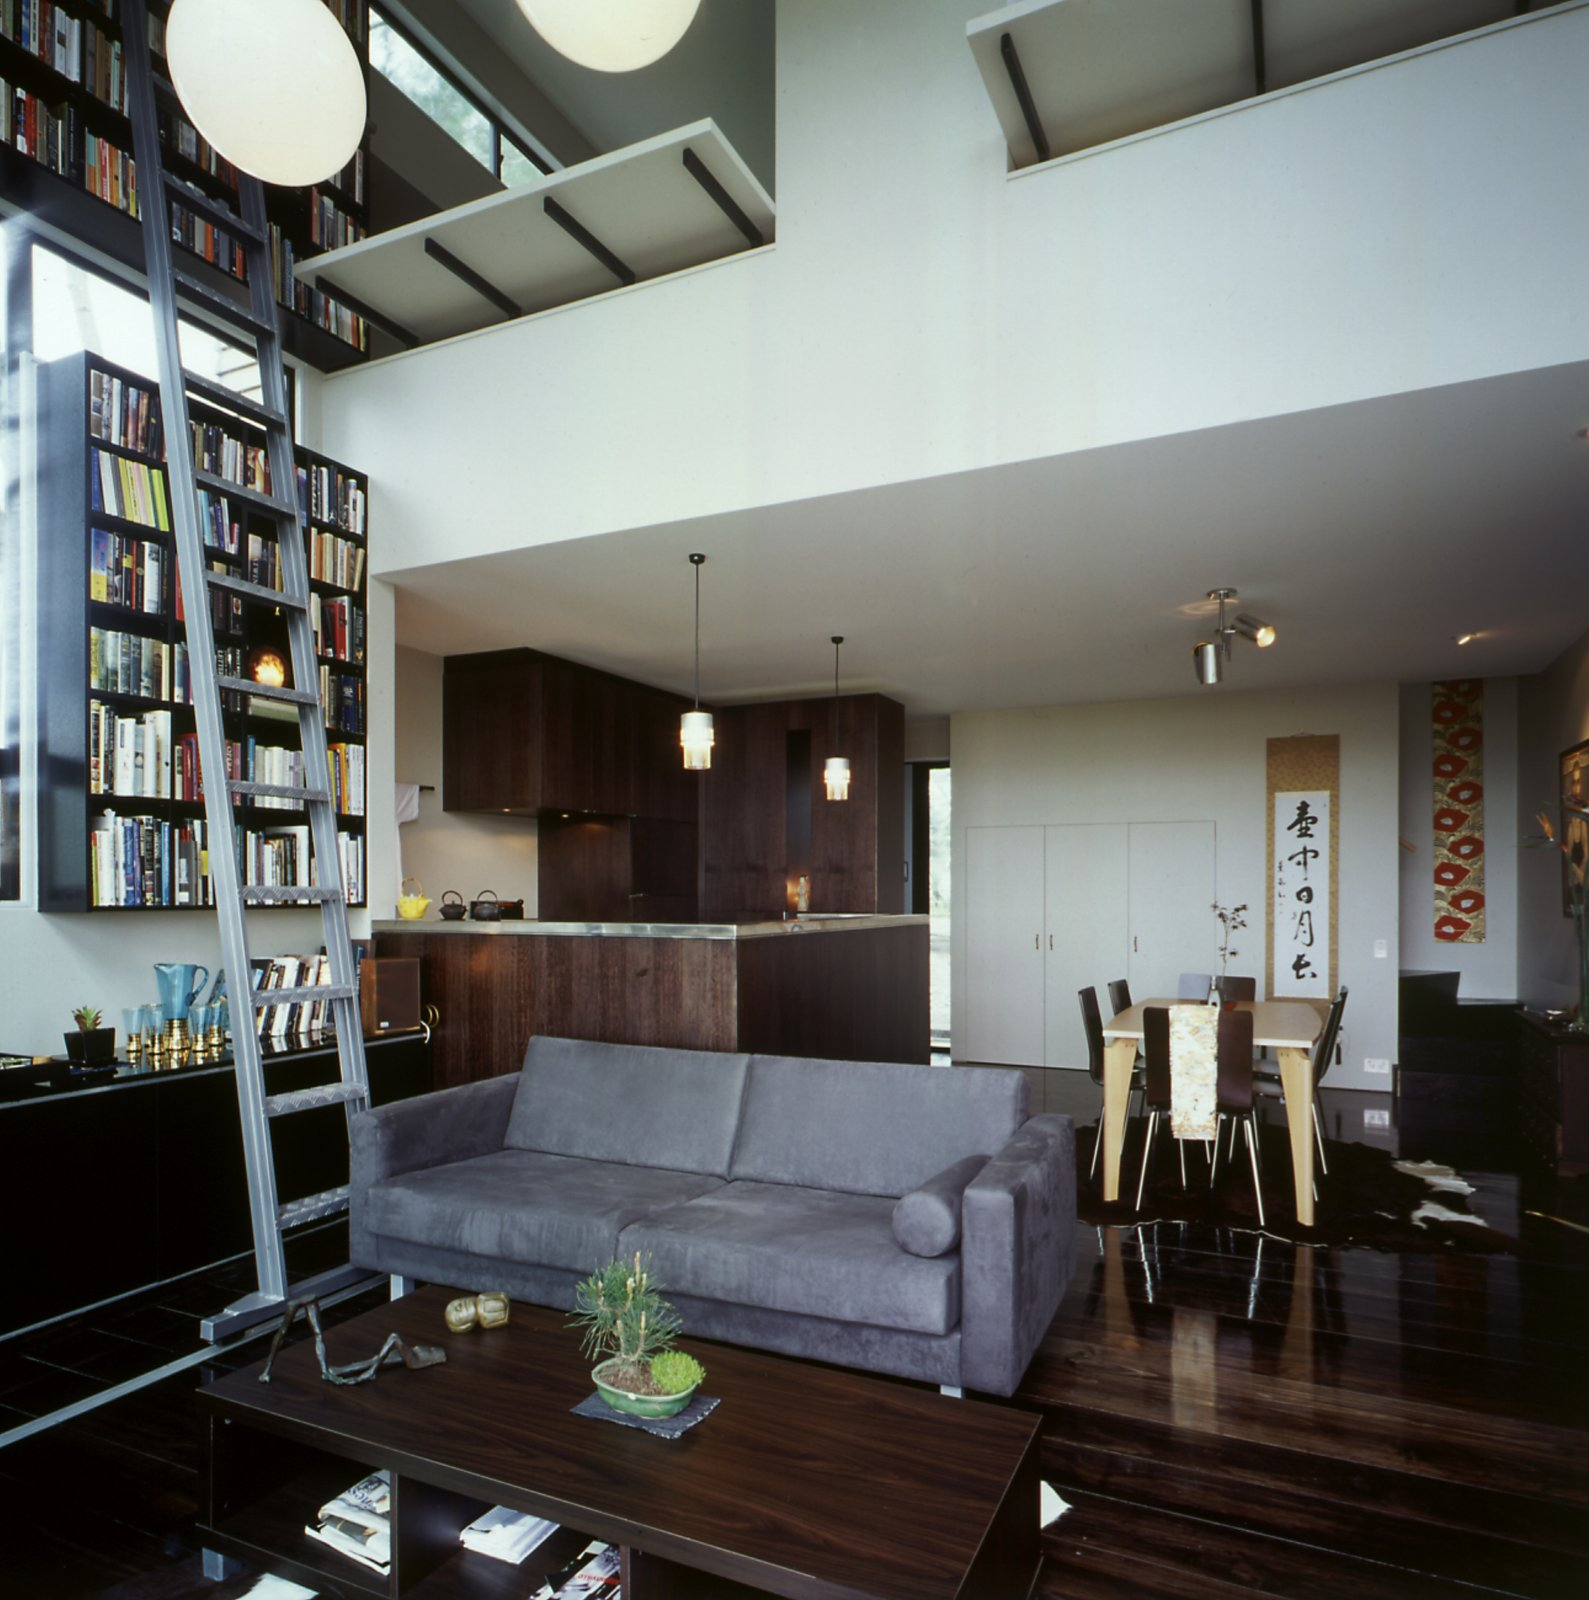 The central area uses the available space in a deceptively simple way. With the kitchen to the left and bedroom to the right, two offices are stacked above it and accessed by a stairway in the rear of the room. Family antiques and Japanese textiles composed of complementary textures turn what is essentially a boxy space into a welcoming home. This Japanese-Style Box Home Boasts a Two-Story Bookcase - Photo 2 of 7